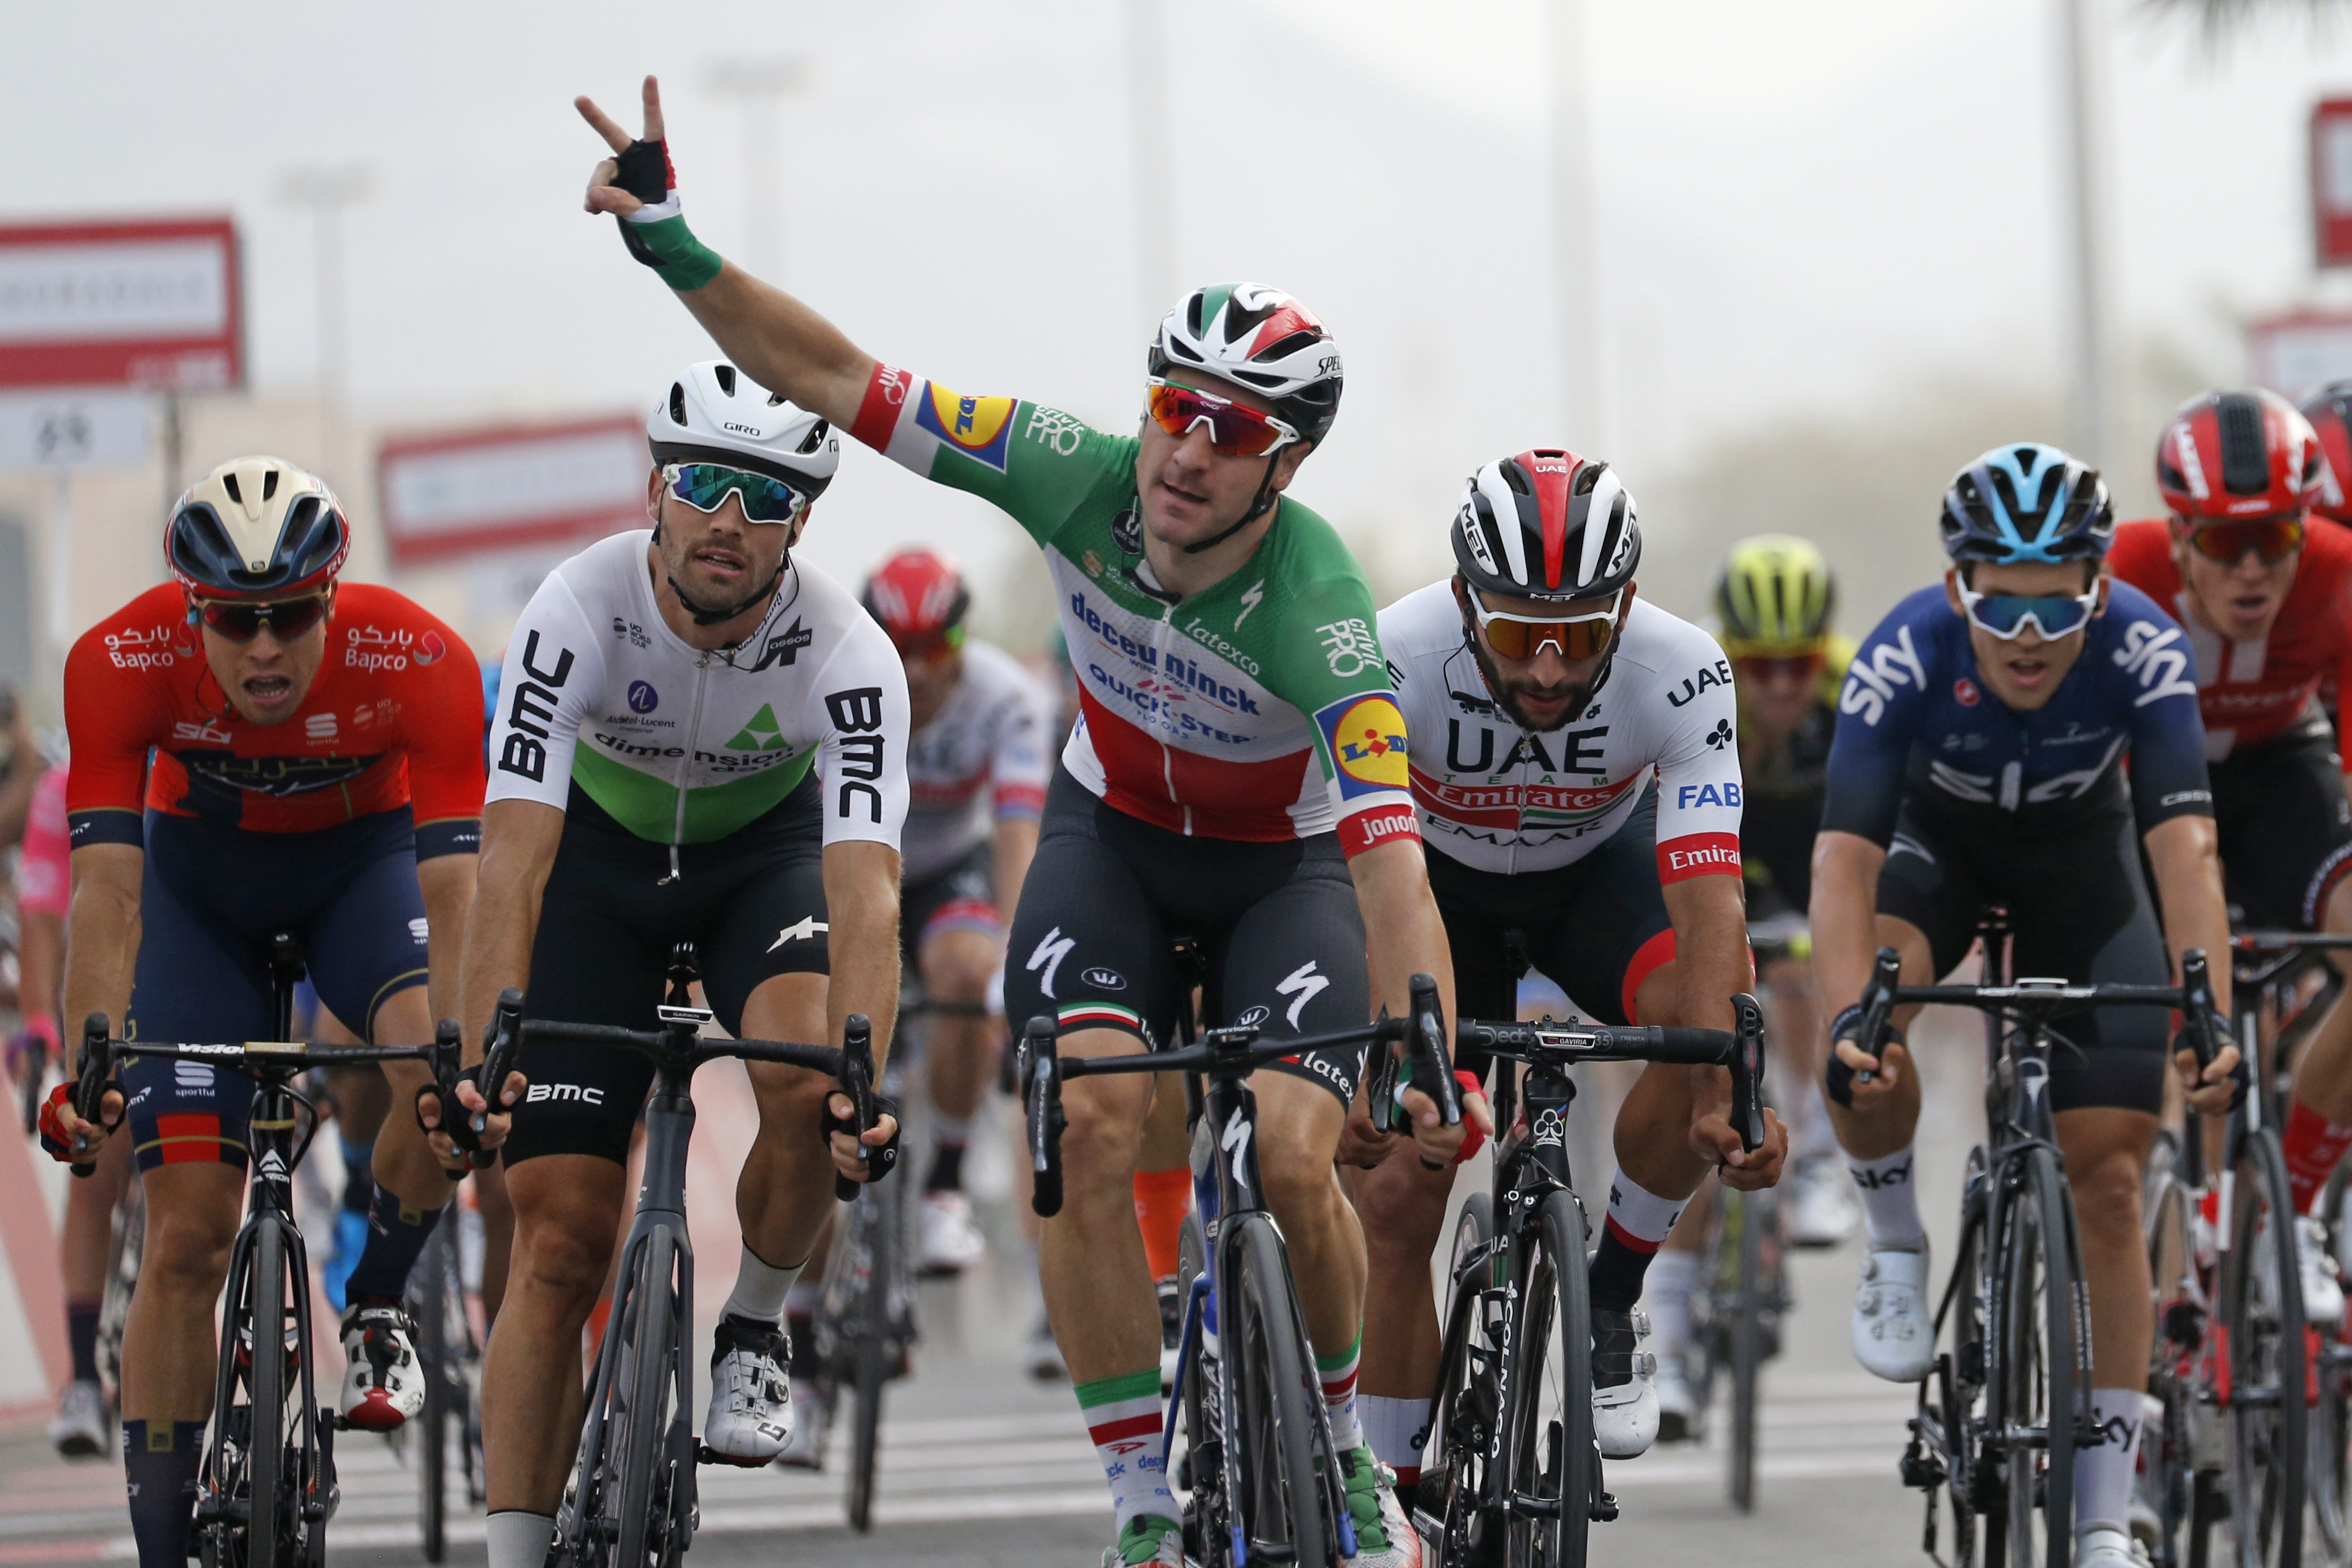 Elia Viviani wins UAE Tour 2019 stage five in close finish - Cycling Weekly